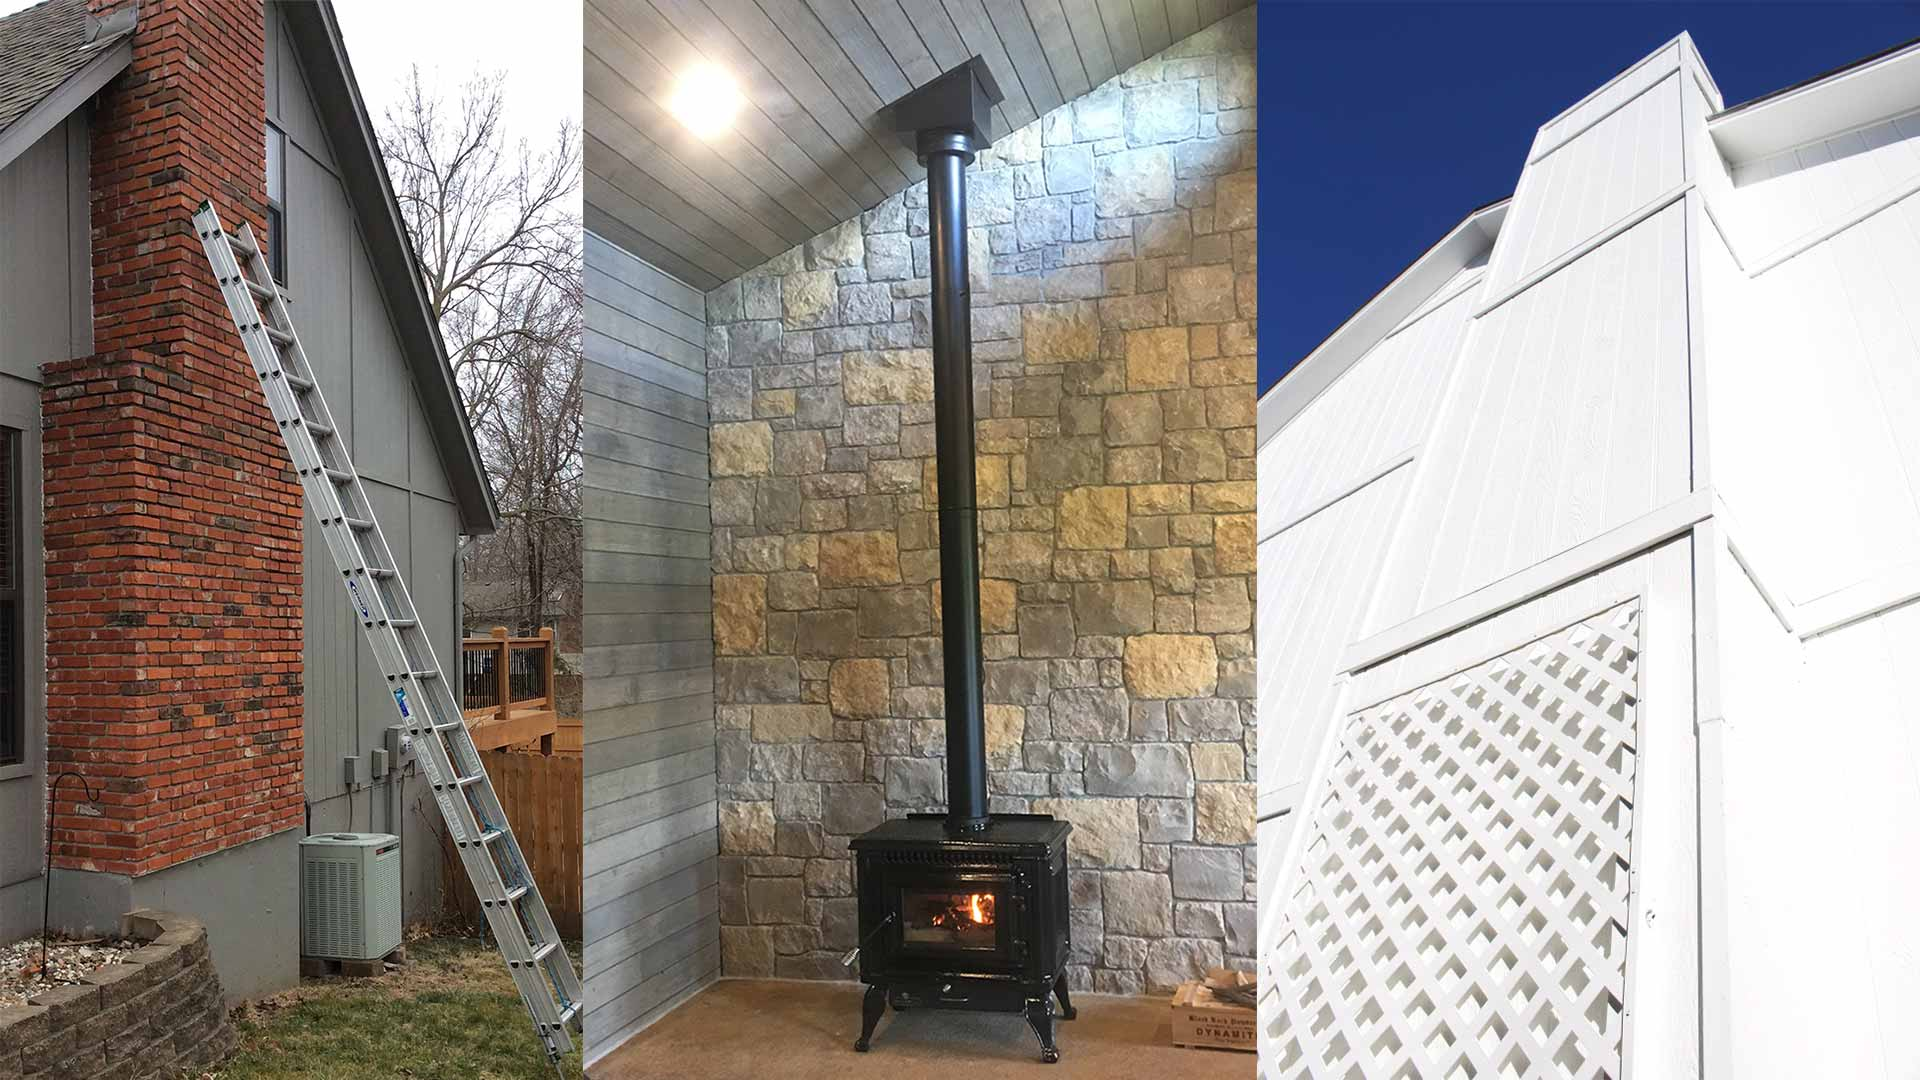 3 Types of Chimneys Masonry, Wood Stove, and Prefab with Siding